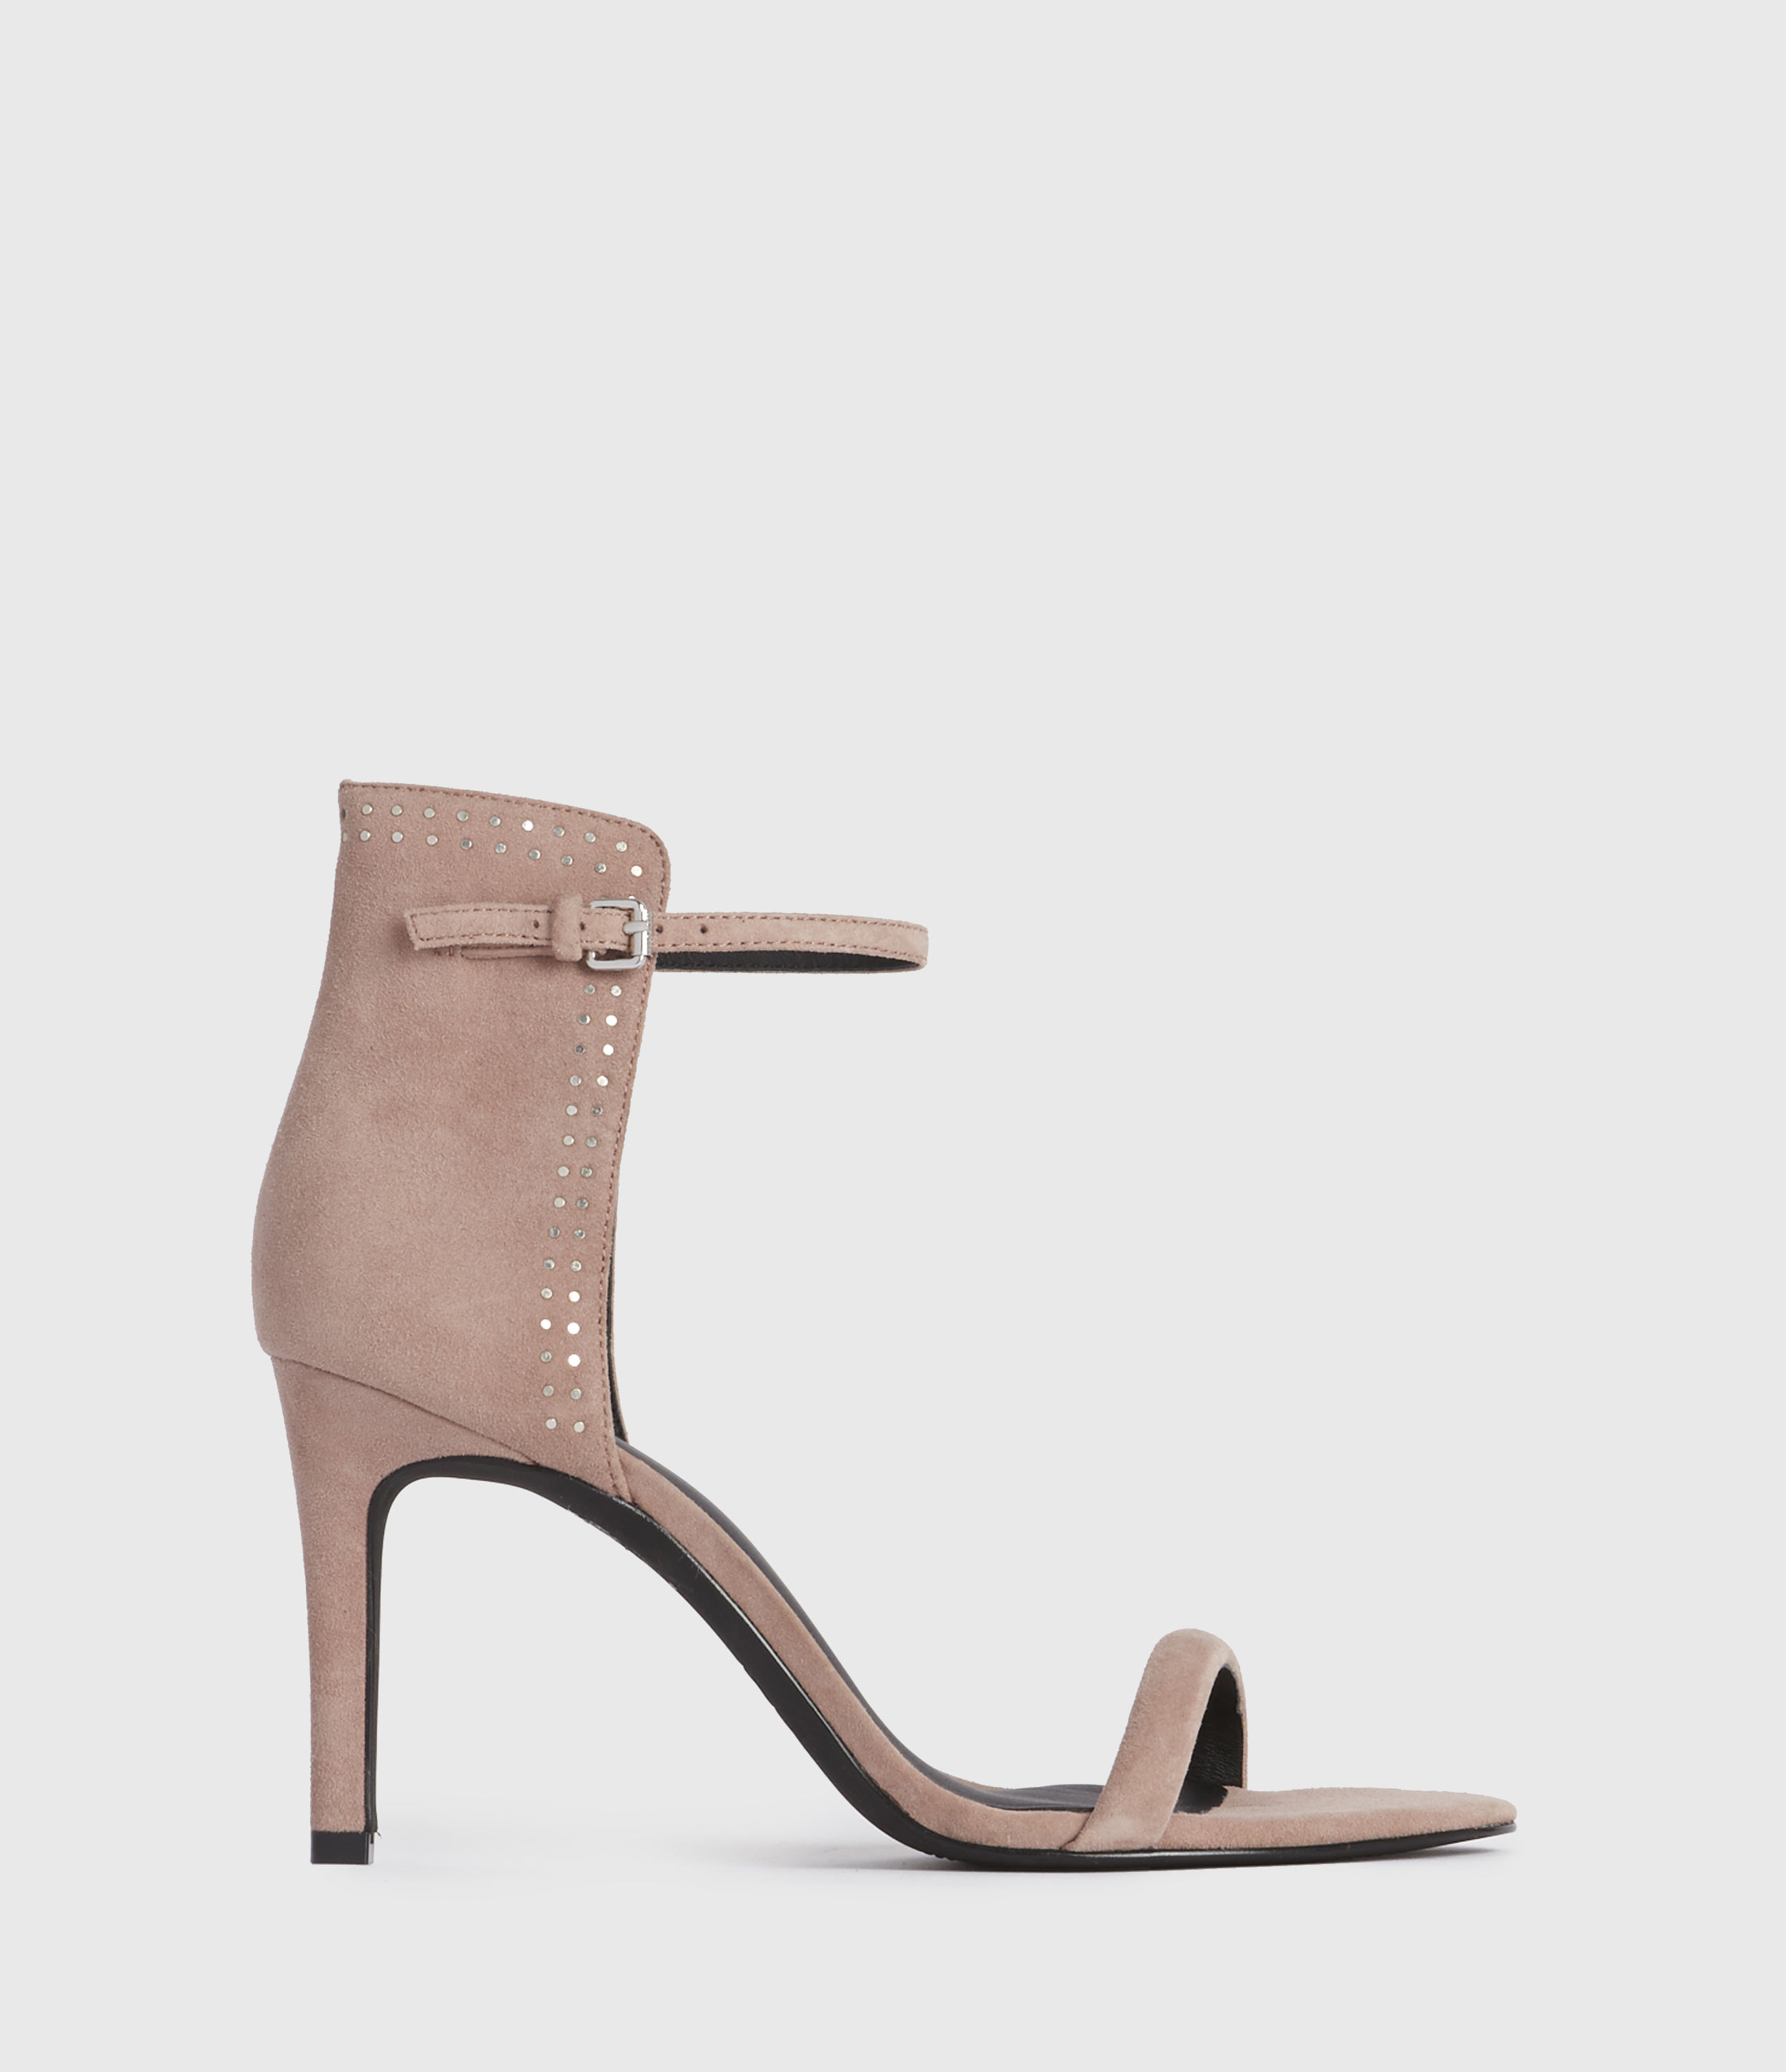 AllSaints Womens Avia Suede Sandals, Blush Pink, Size: UK 3/US 5/EU 36